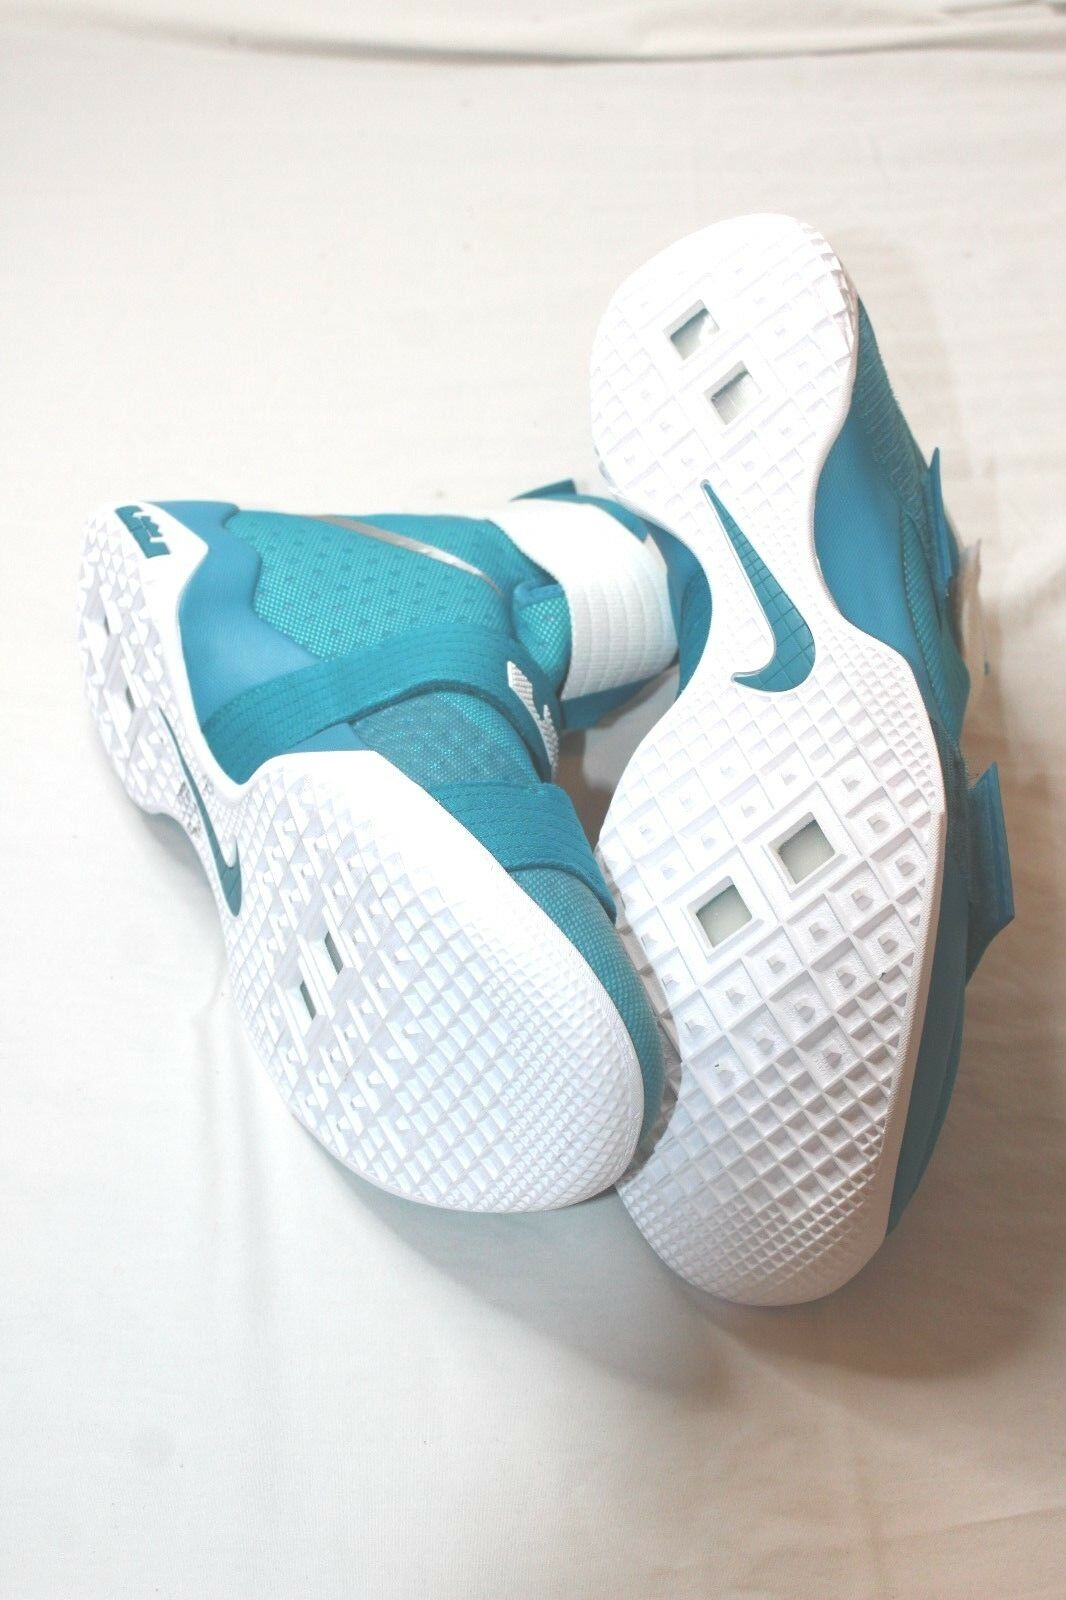 7fe332ae2a4 ... Nike LeBron Soldier 10 X X X 856489-332 Turquoise White Size 17.5  Retail  130 New b7448a